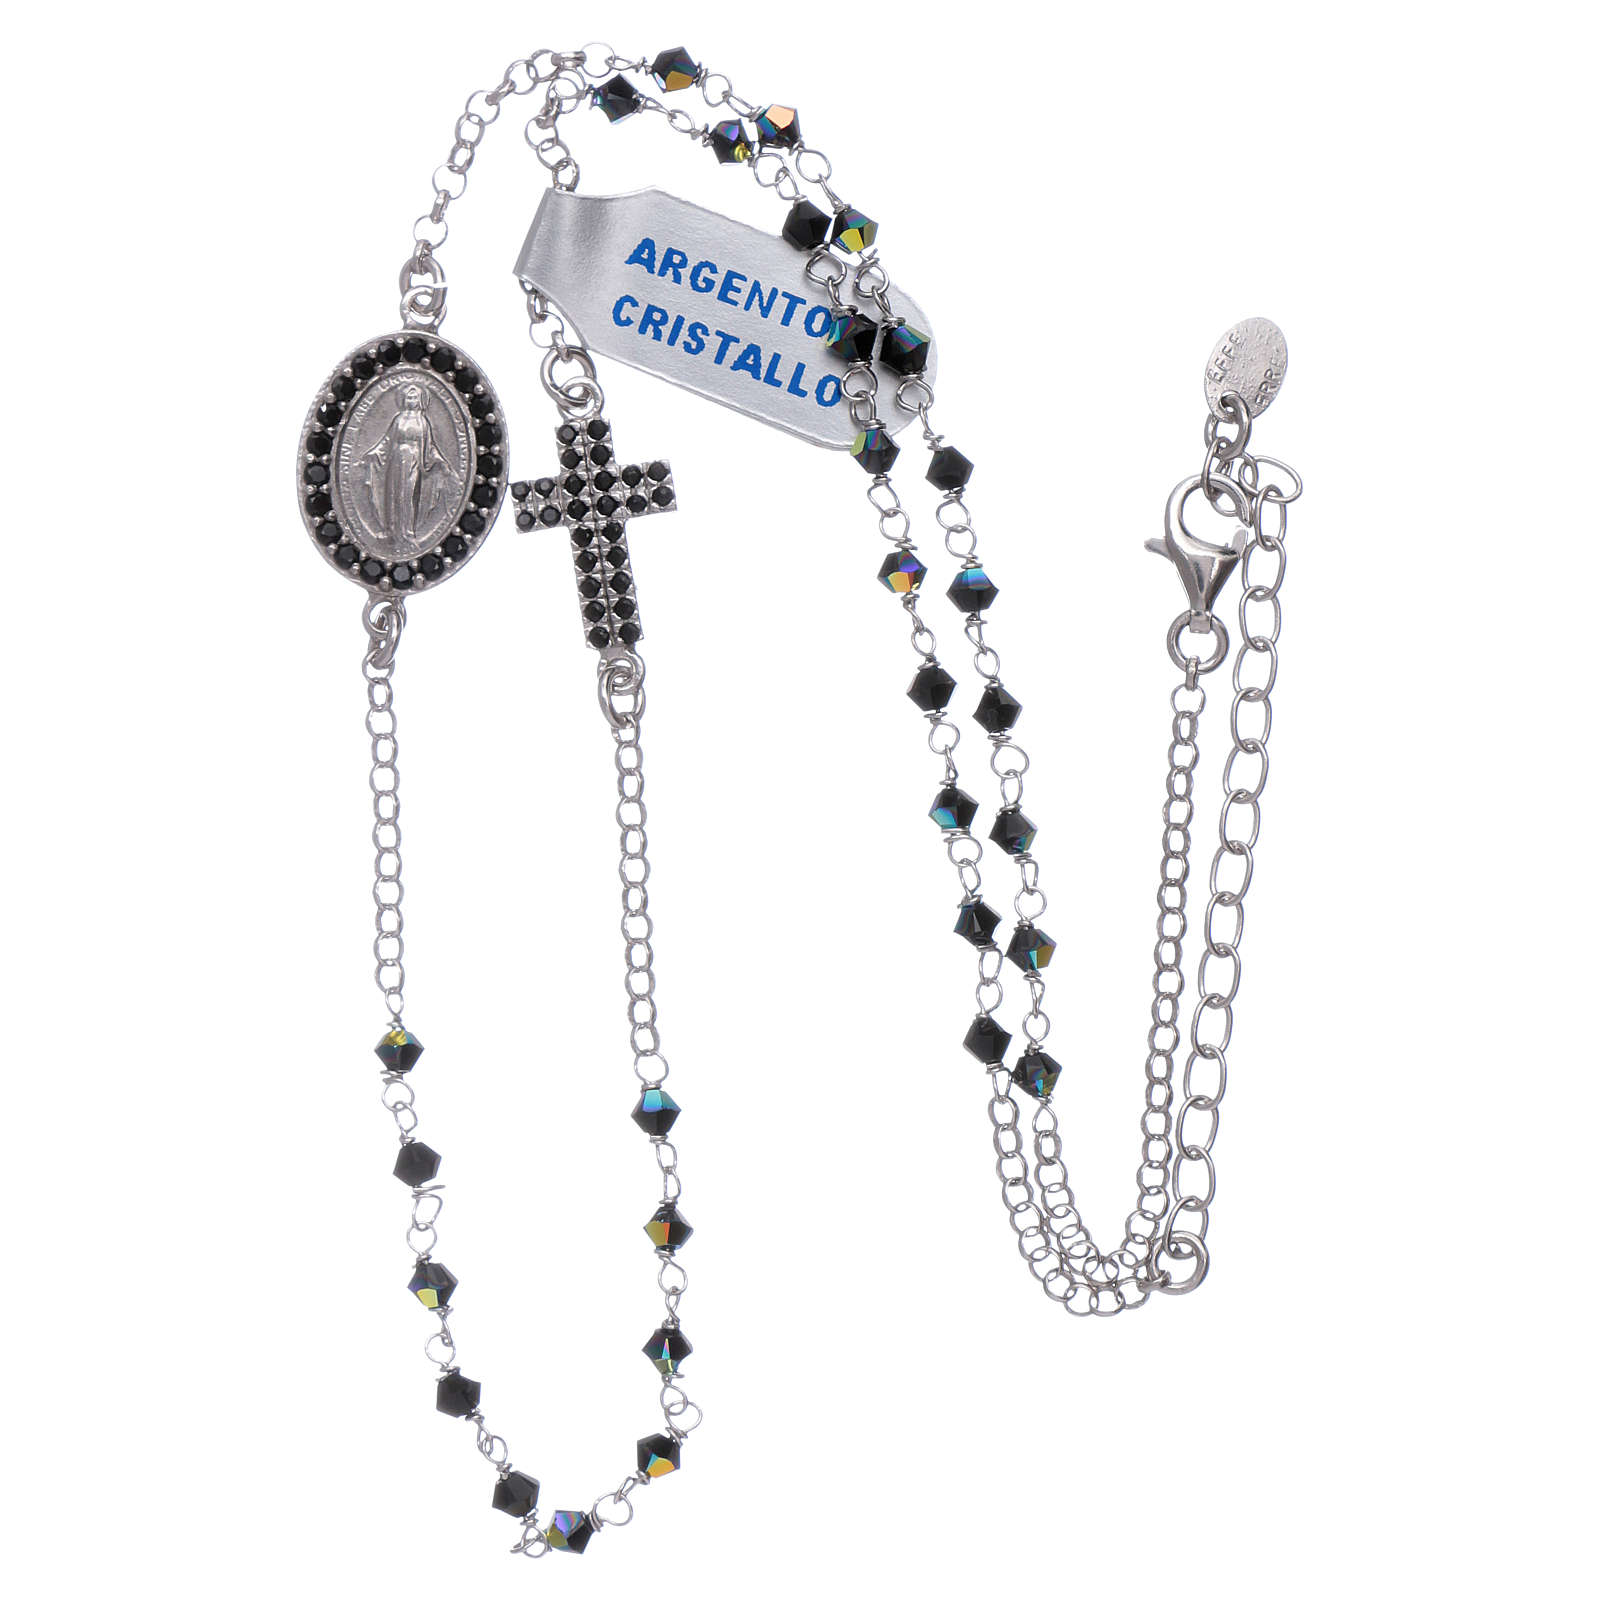 Our Lady of Miracles necklace with medal and cross in silver and black zircons 4